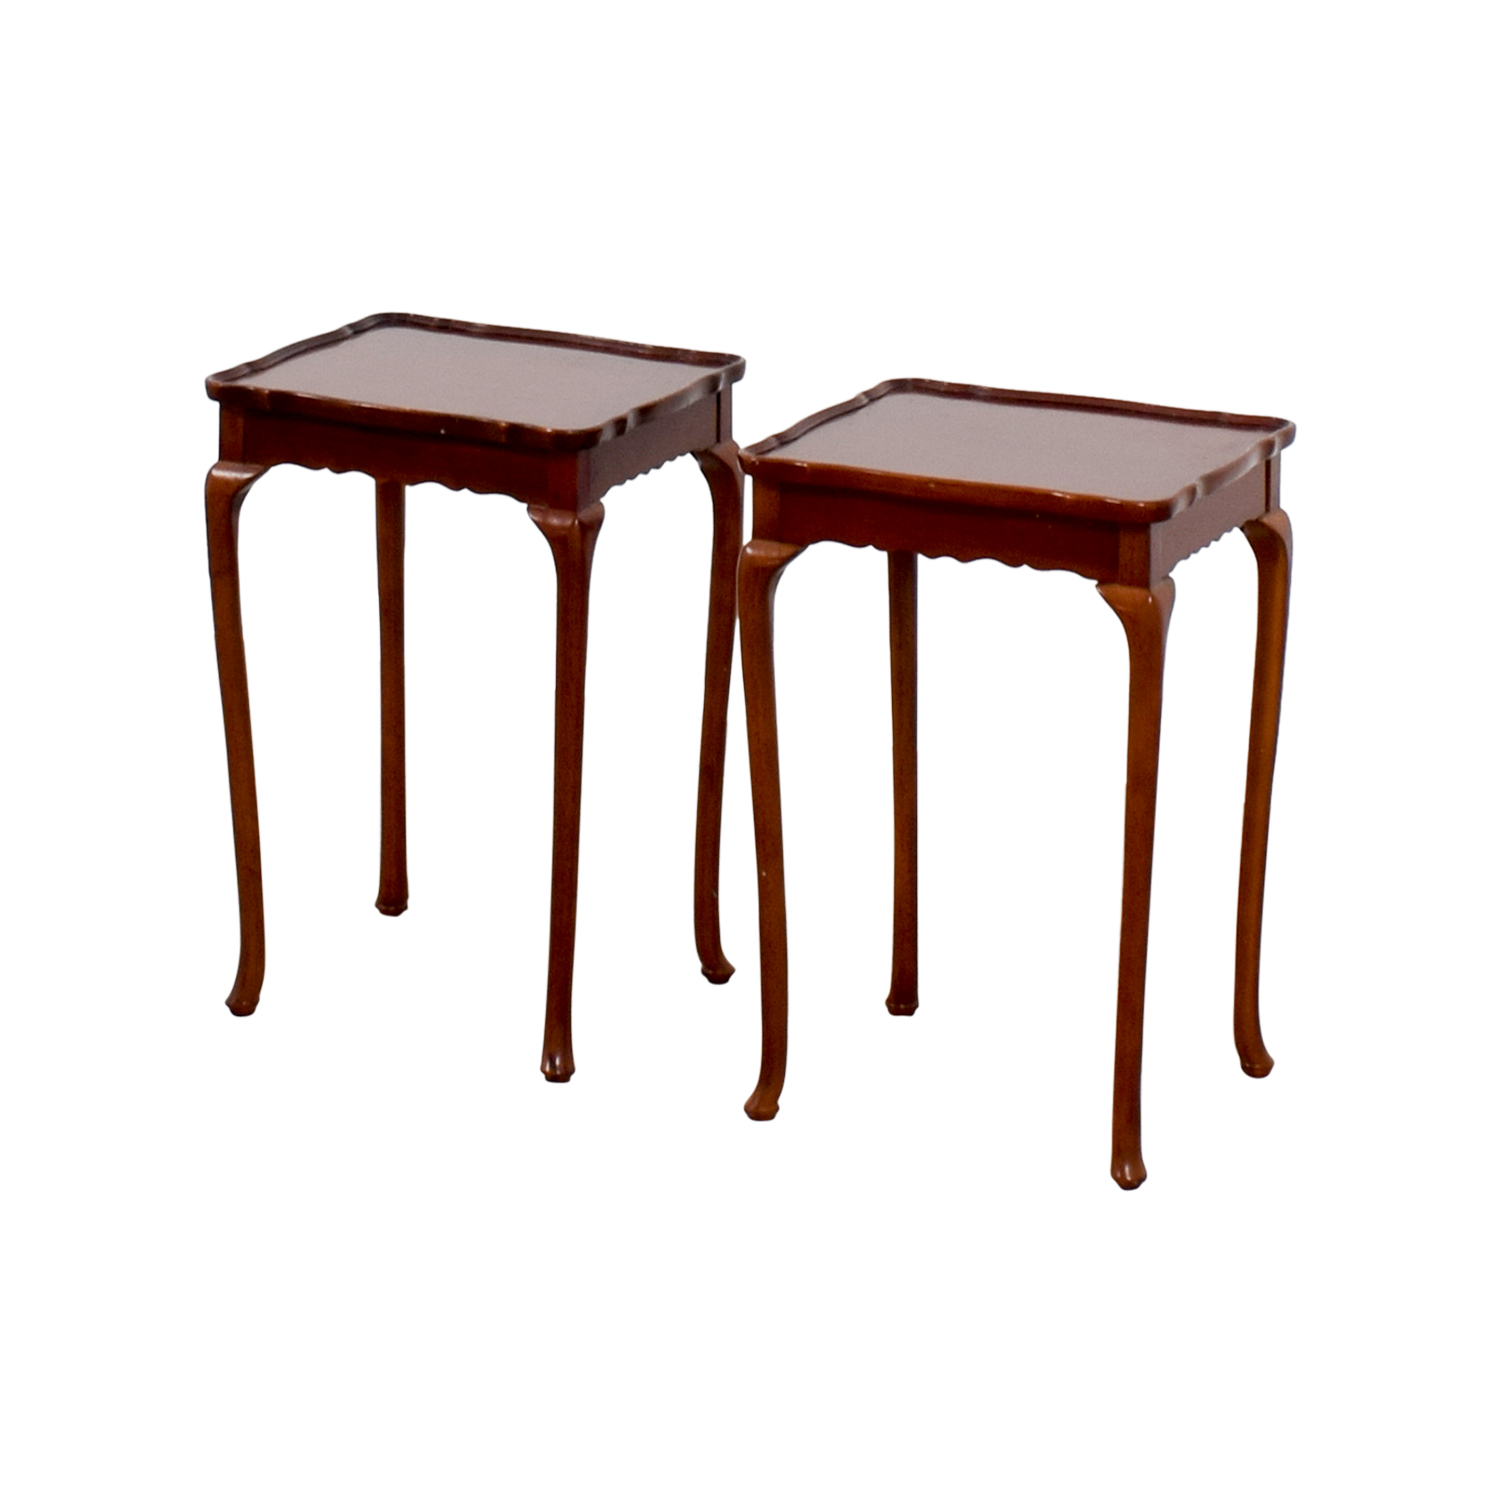 55% OFF Bombay Bombay End Tables Tables